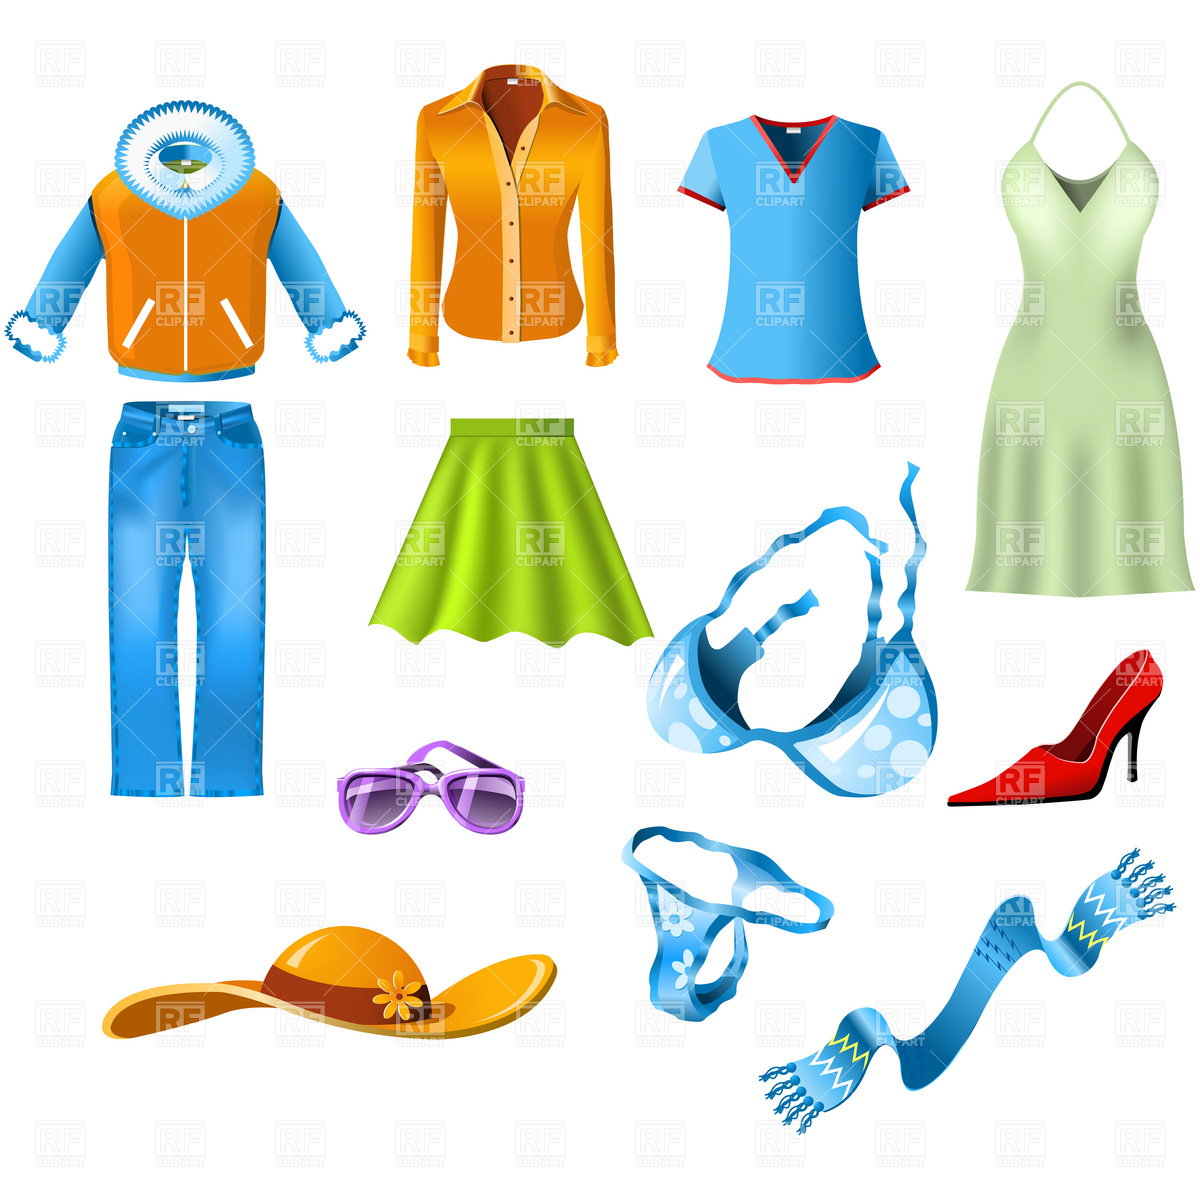 Clothes clipart women\'s clothing, Clothes women\'s clothing.